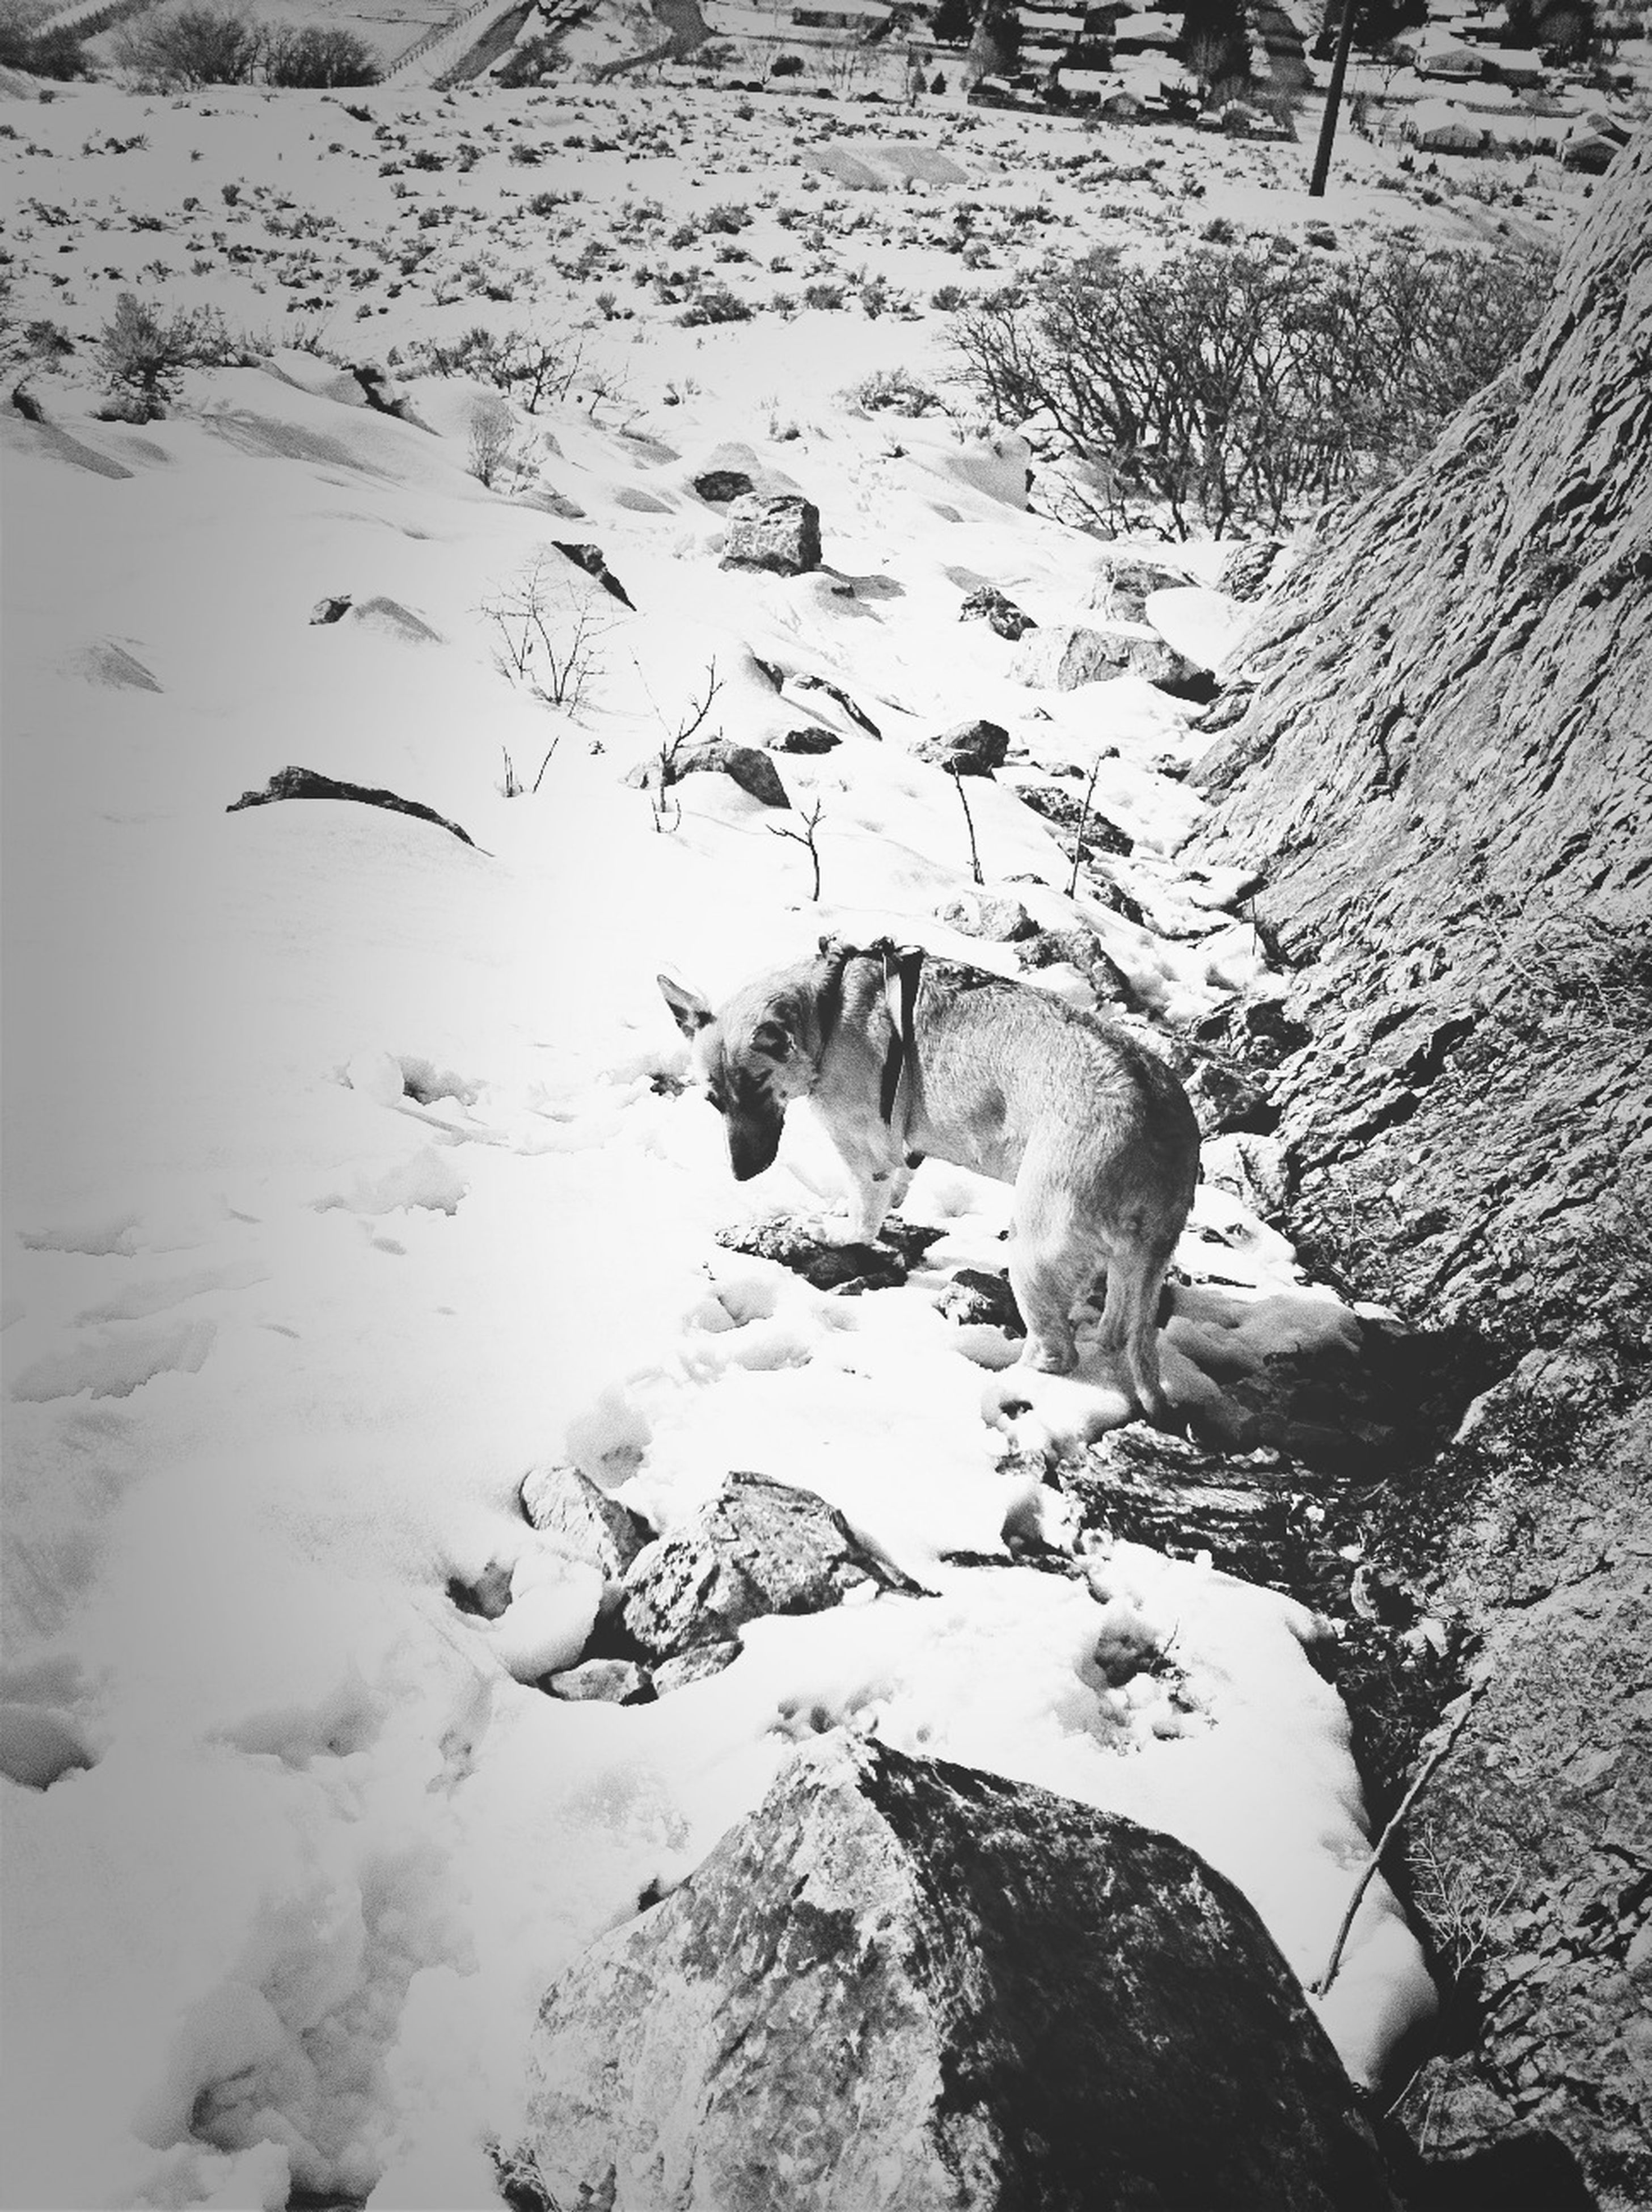 animal themes, animals in the wild, wildlife, bird, one animal, high angle view, snow, nature, winter, cold temperature, mammal, water, field, outdoors, day, no people, domestic animals, two animals, zoology, white color